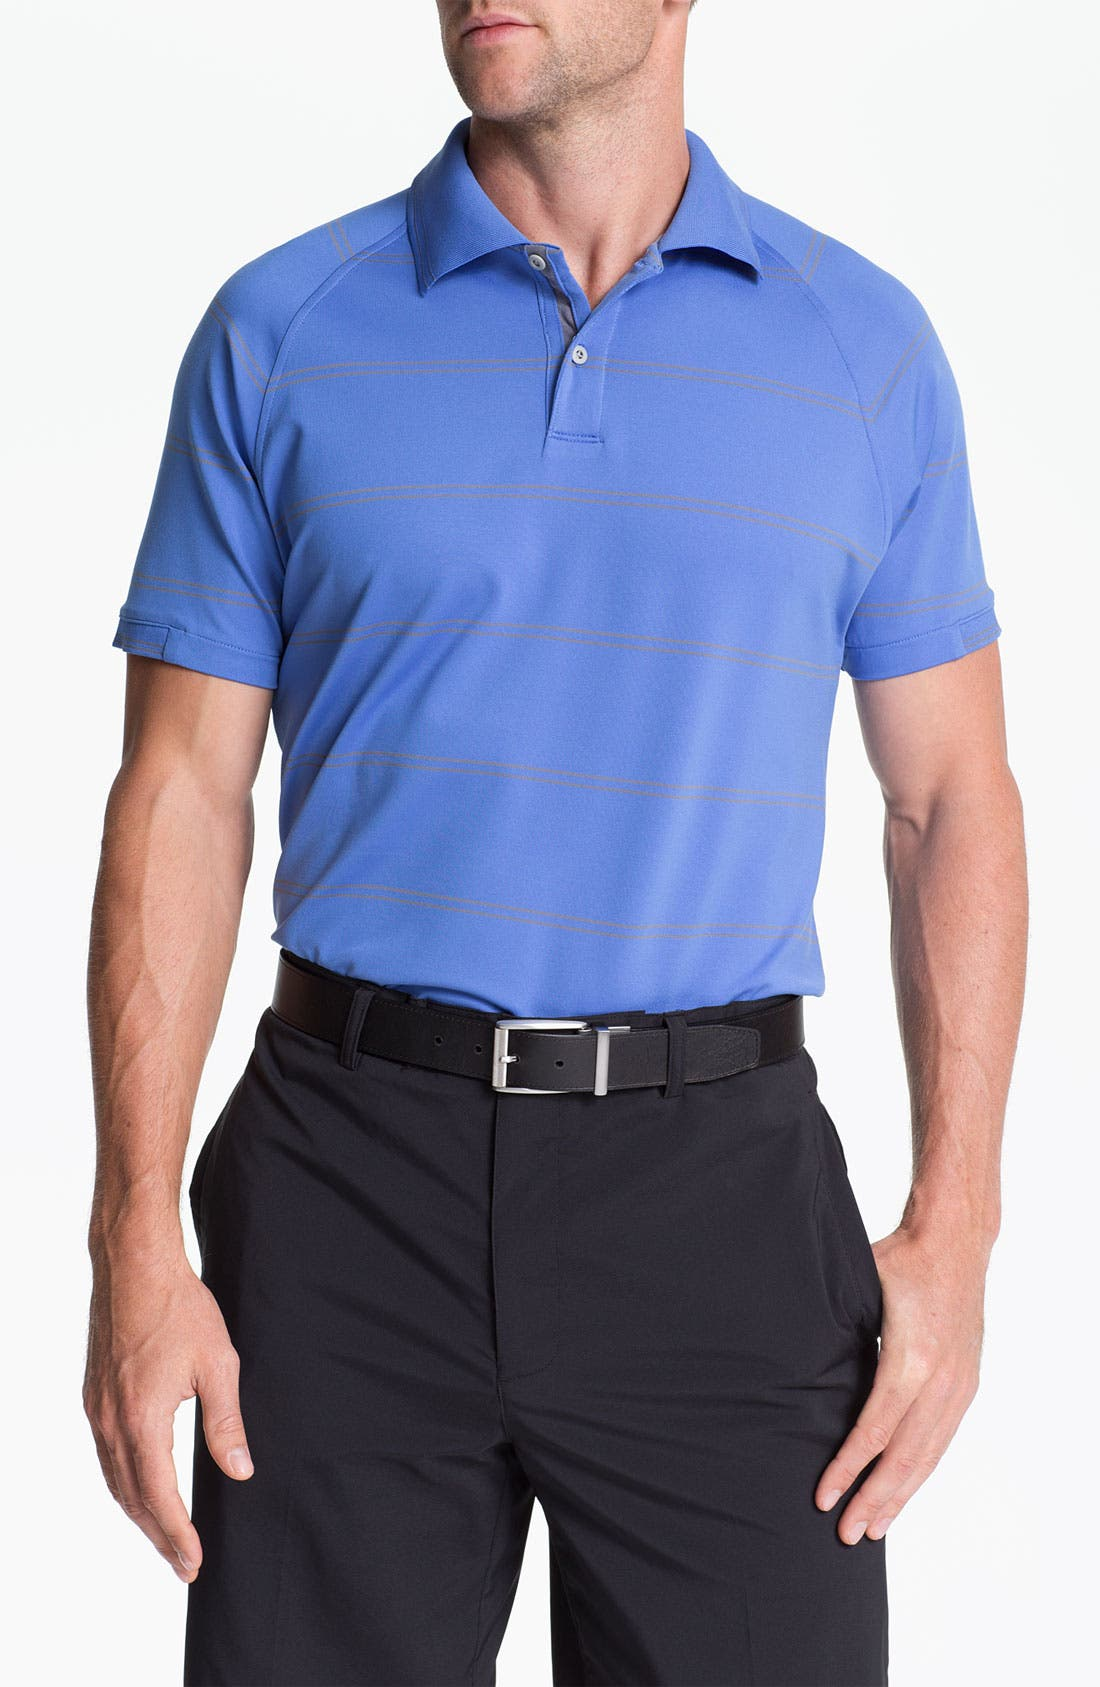 Alternate Image 1 Selected - Zero Restriction 'Pencil Stripe' Polo (Online Only)